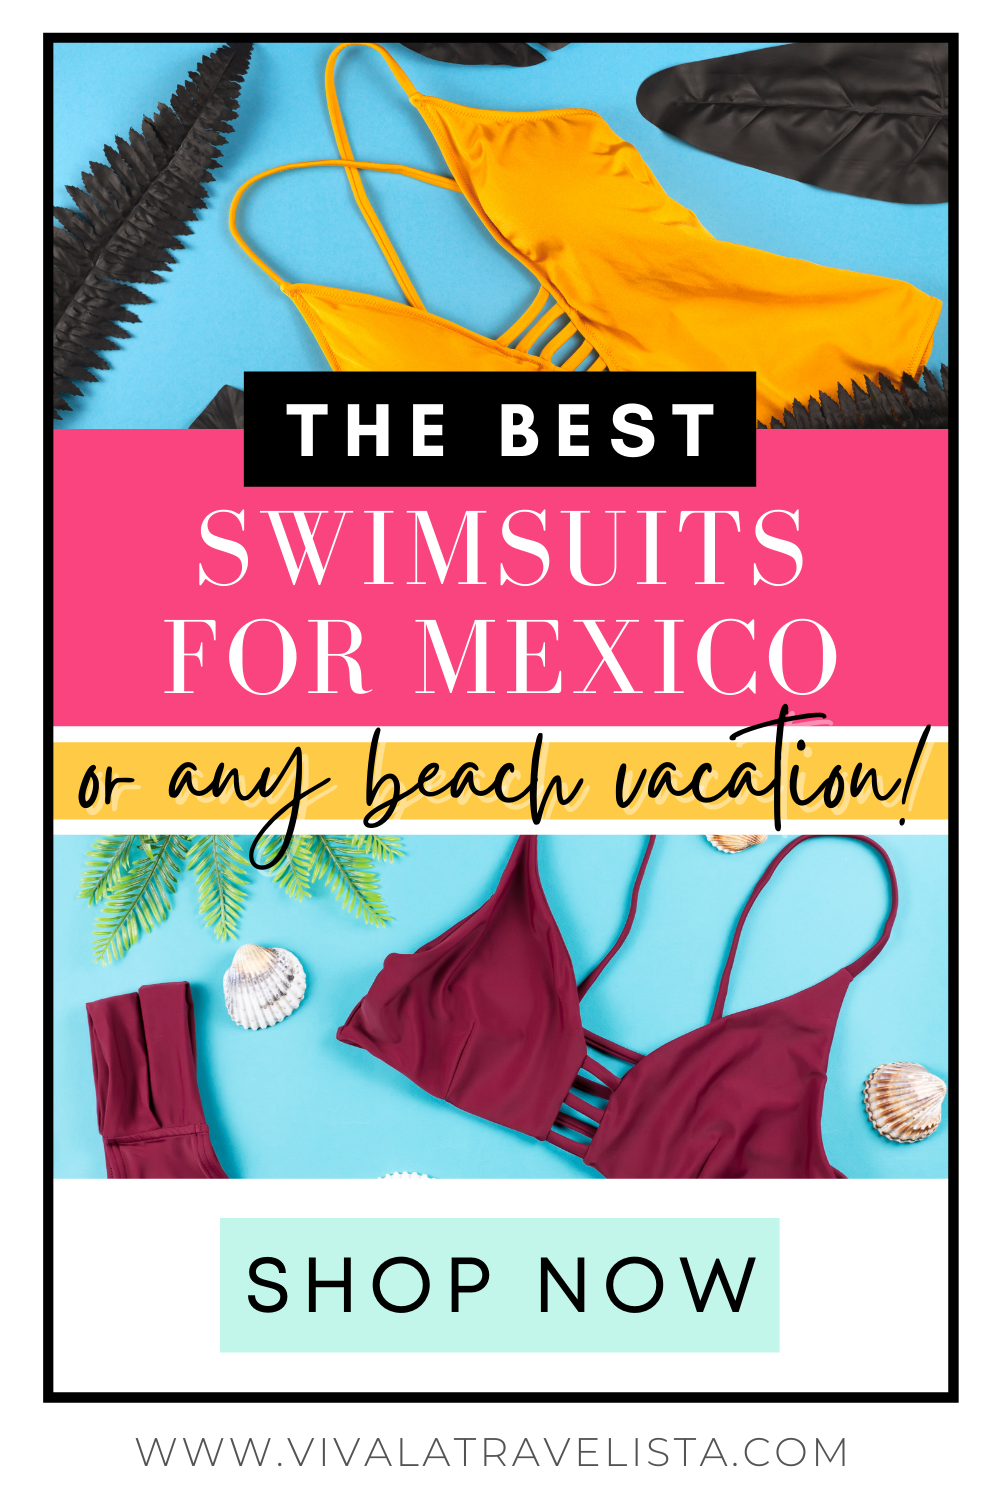 The Best Swimsuits for Mexico